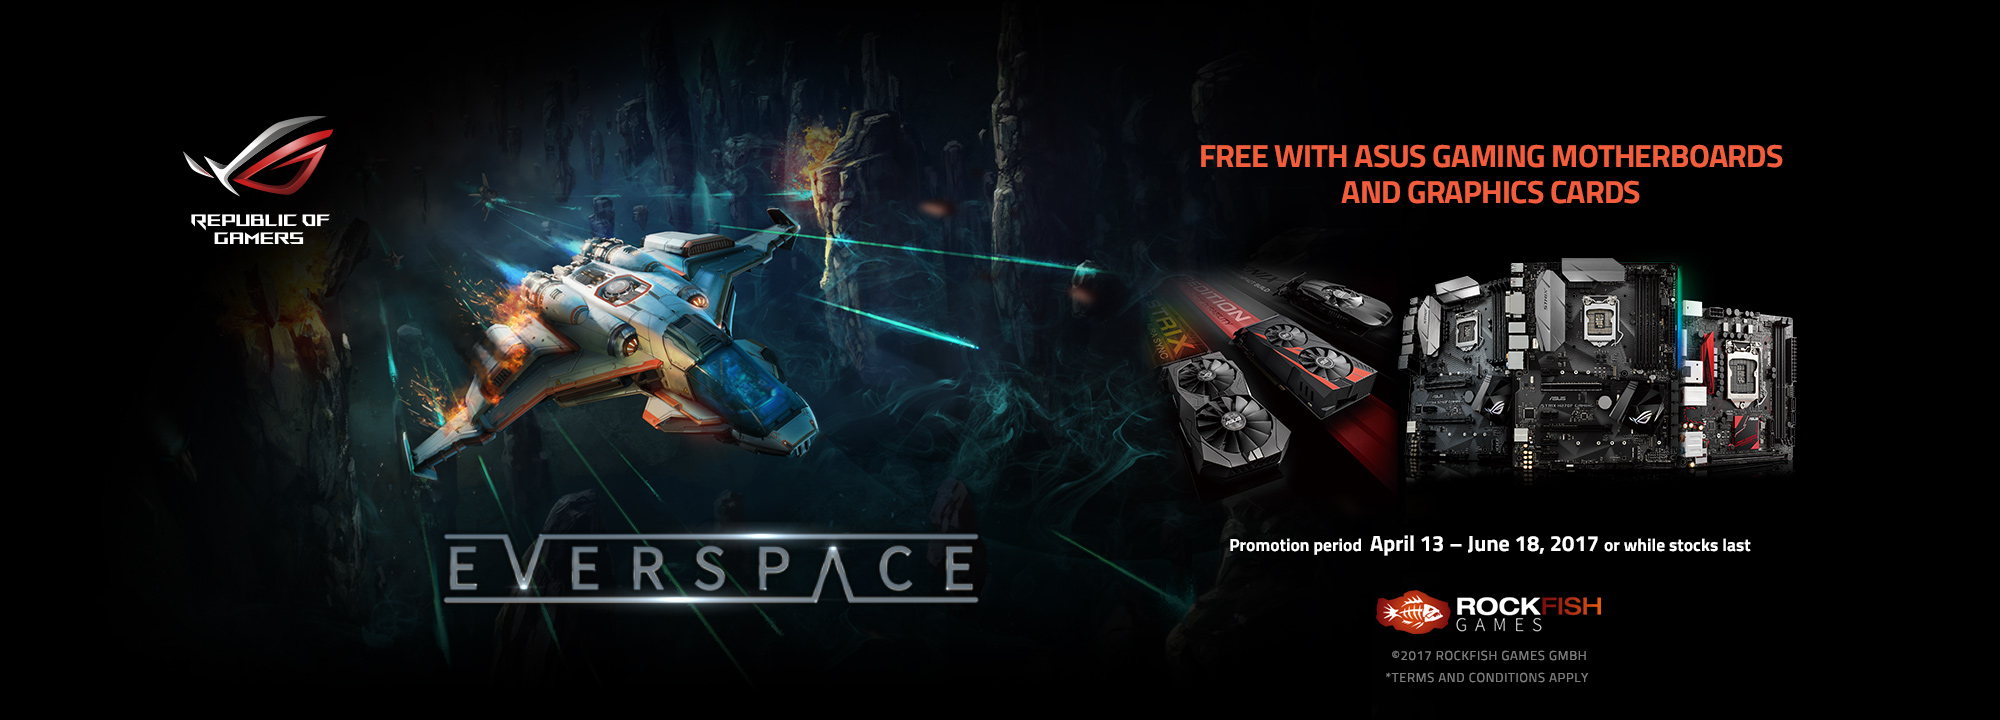 ASUS EVERSPACE game bundle-EMEA